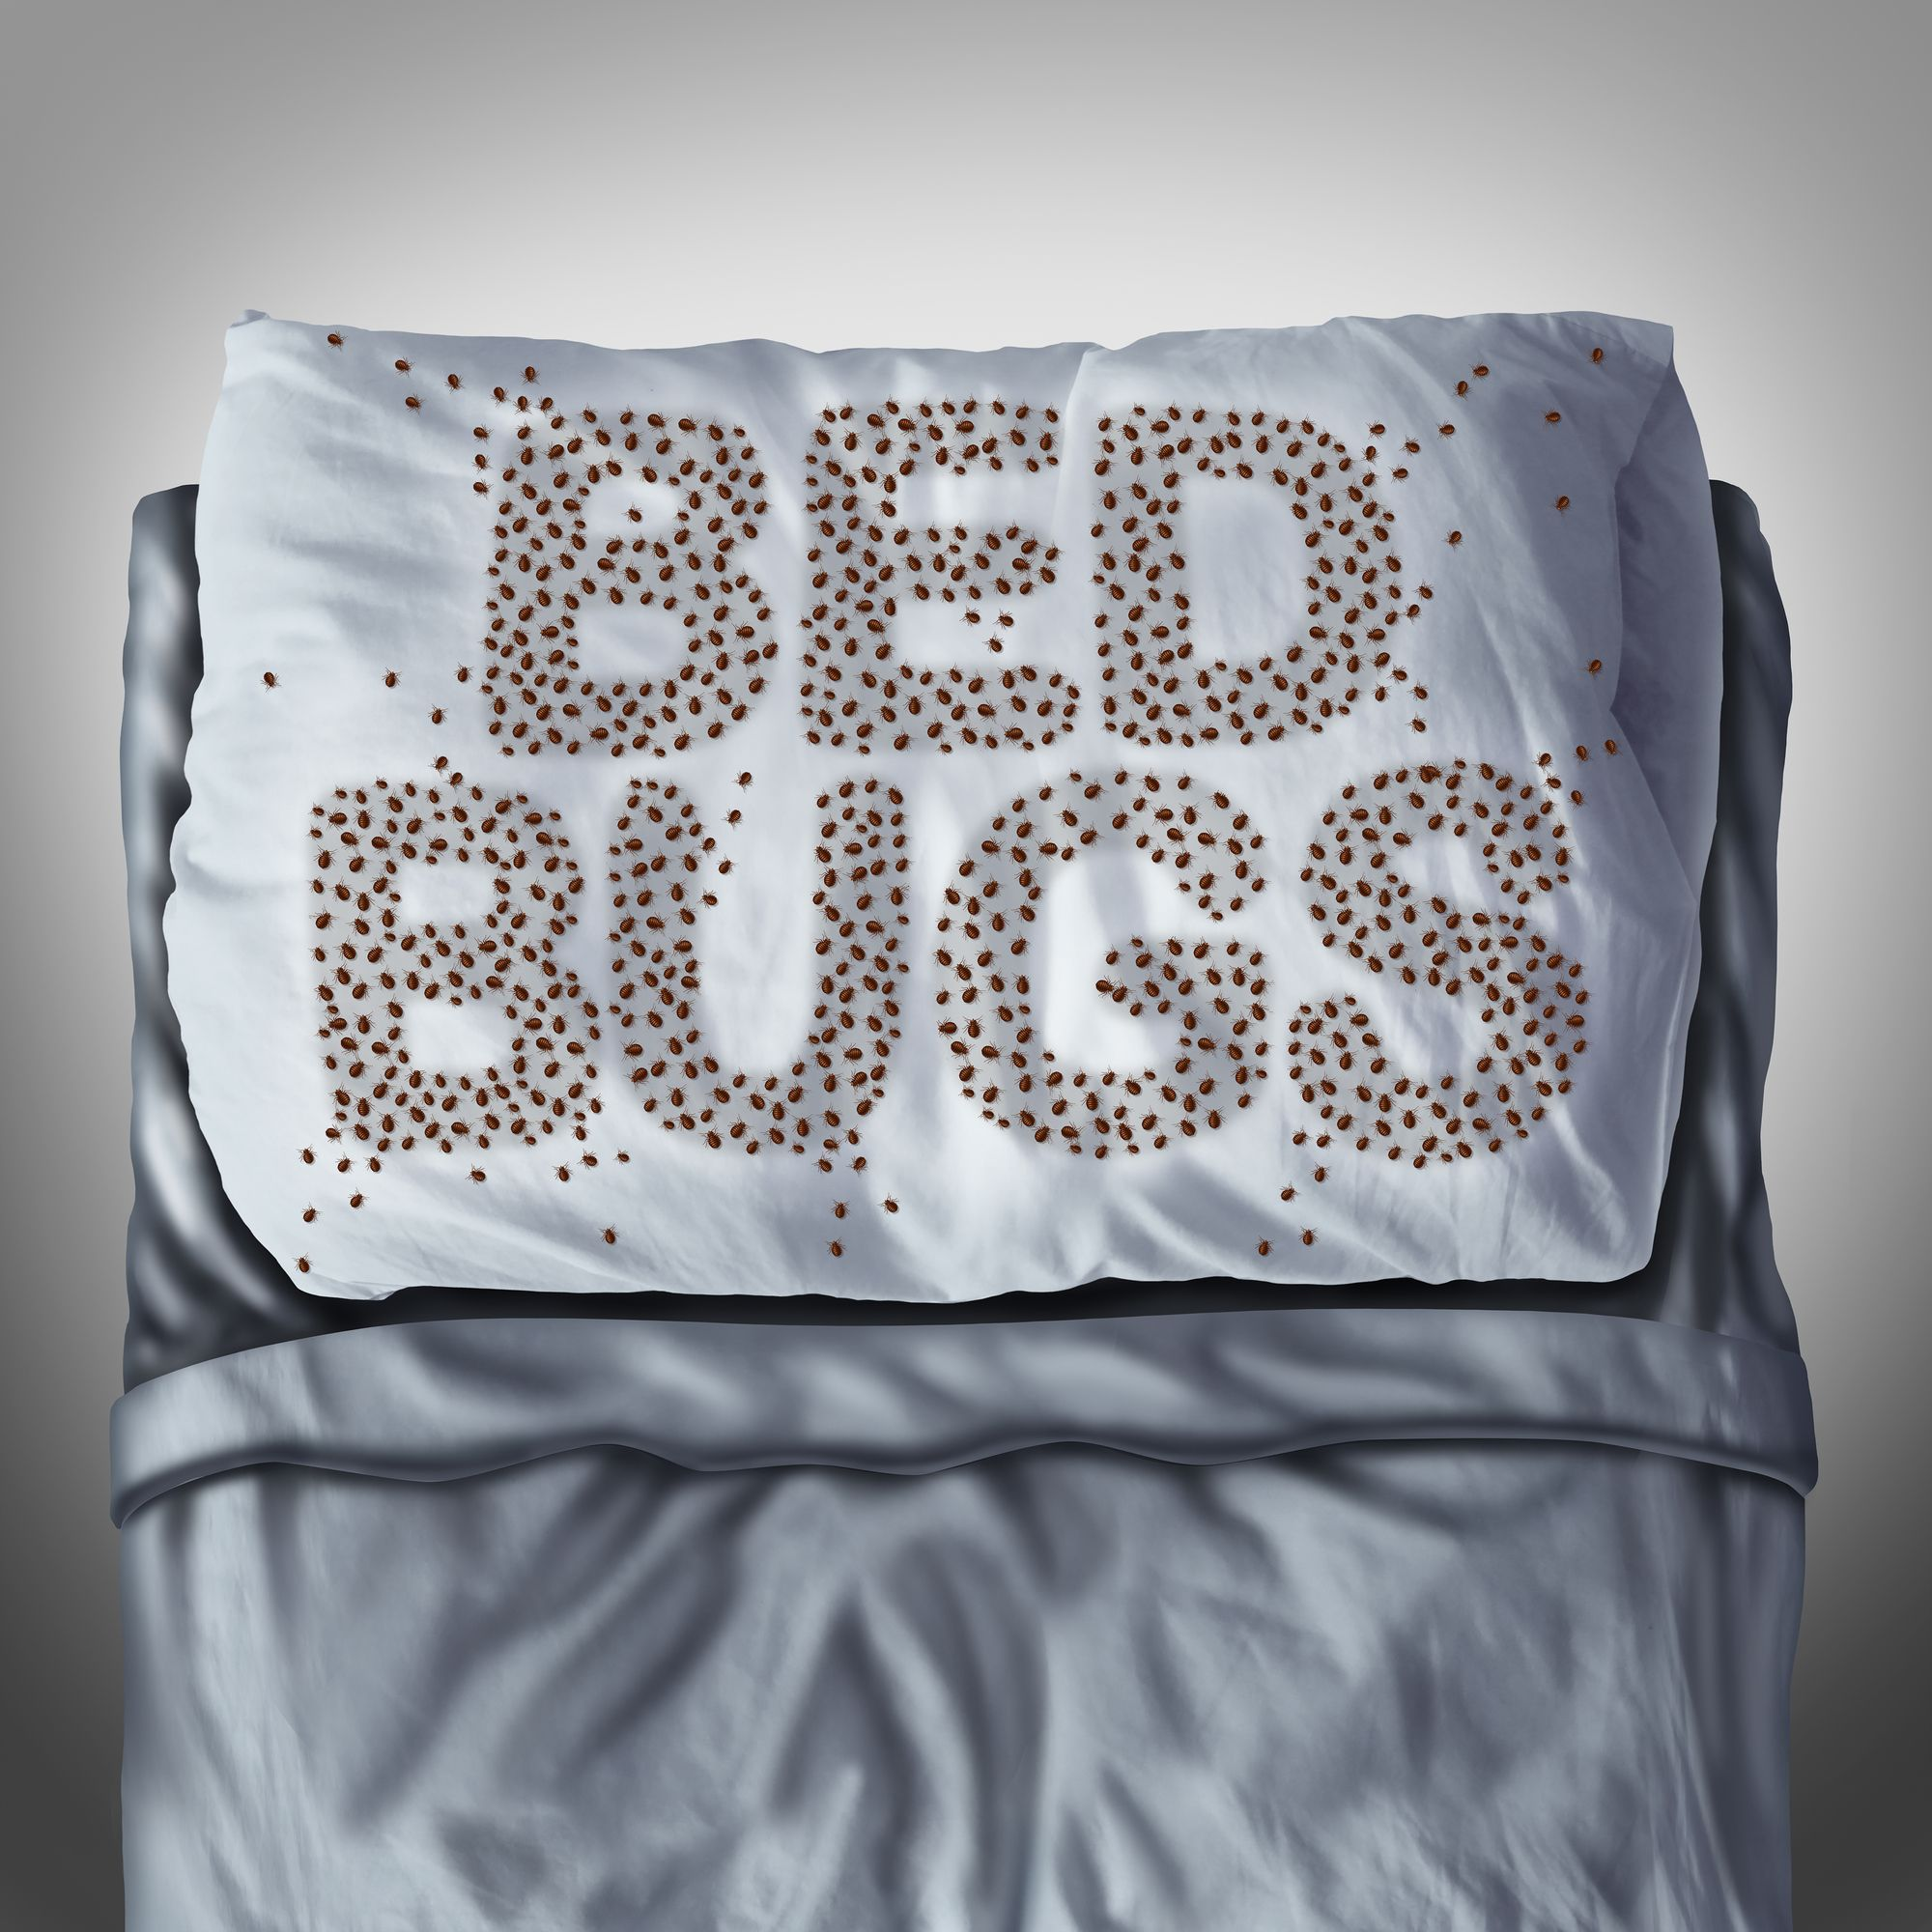 How do you get rid of bed bugs? Here are some tips